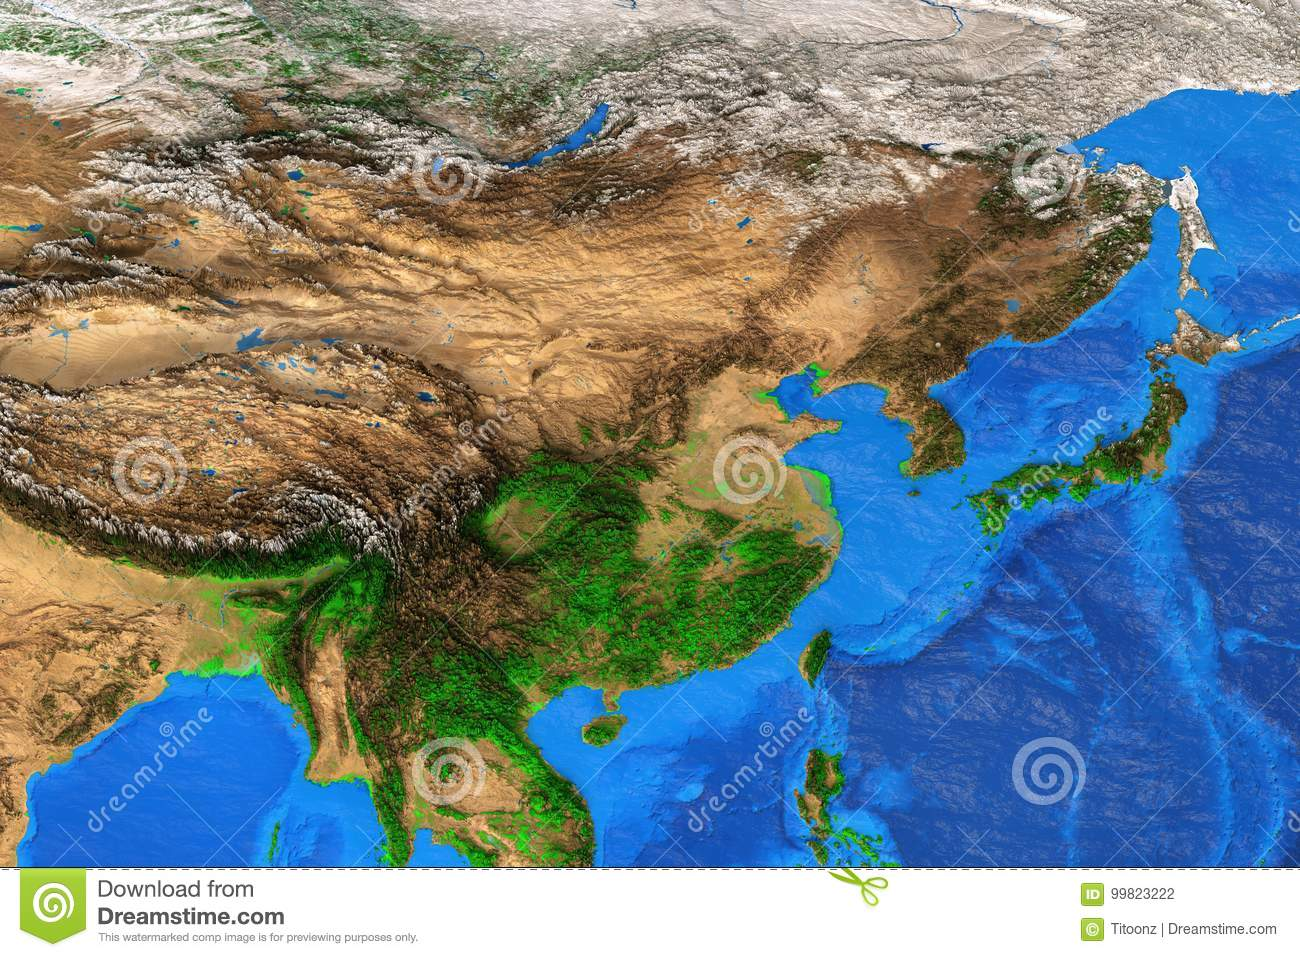 East asia high resolution map stock illustration illustration of east asia high resolution map stock illustration illustration of mountains himalayas 99823222 gumiabroncs Choice Image